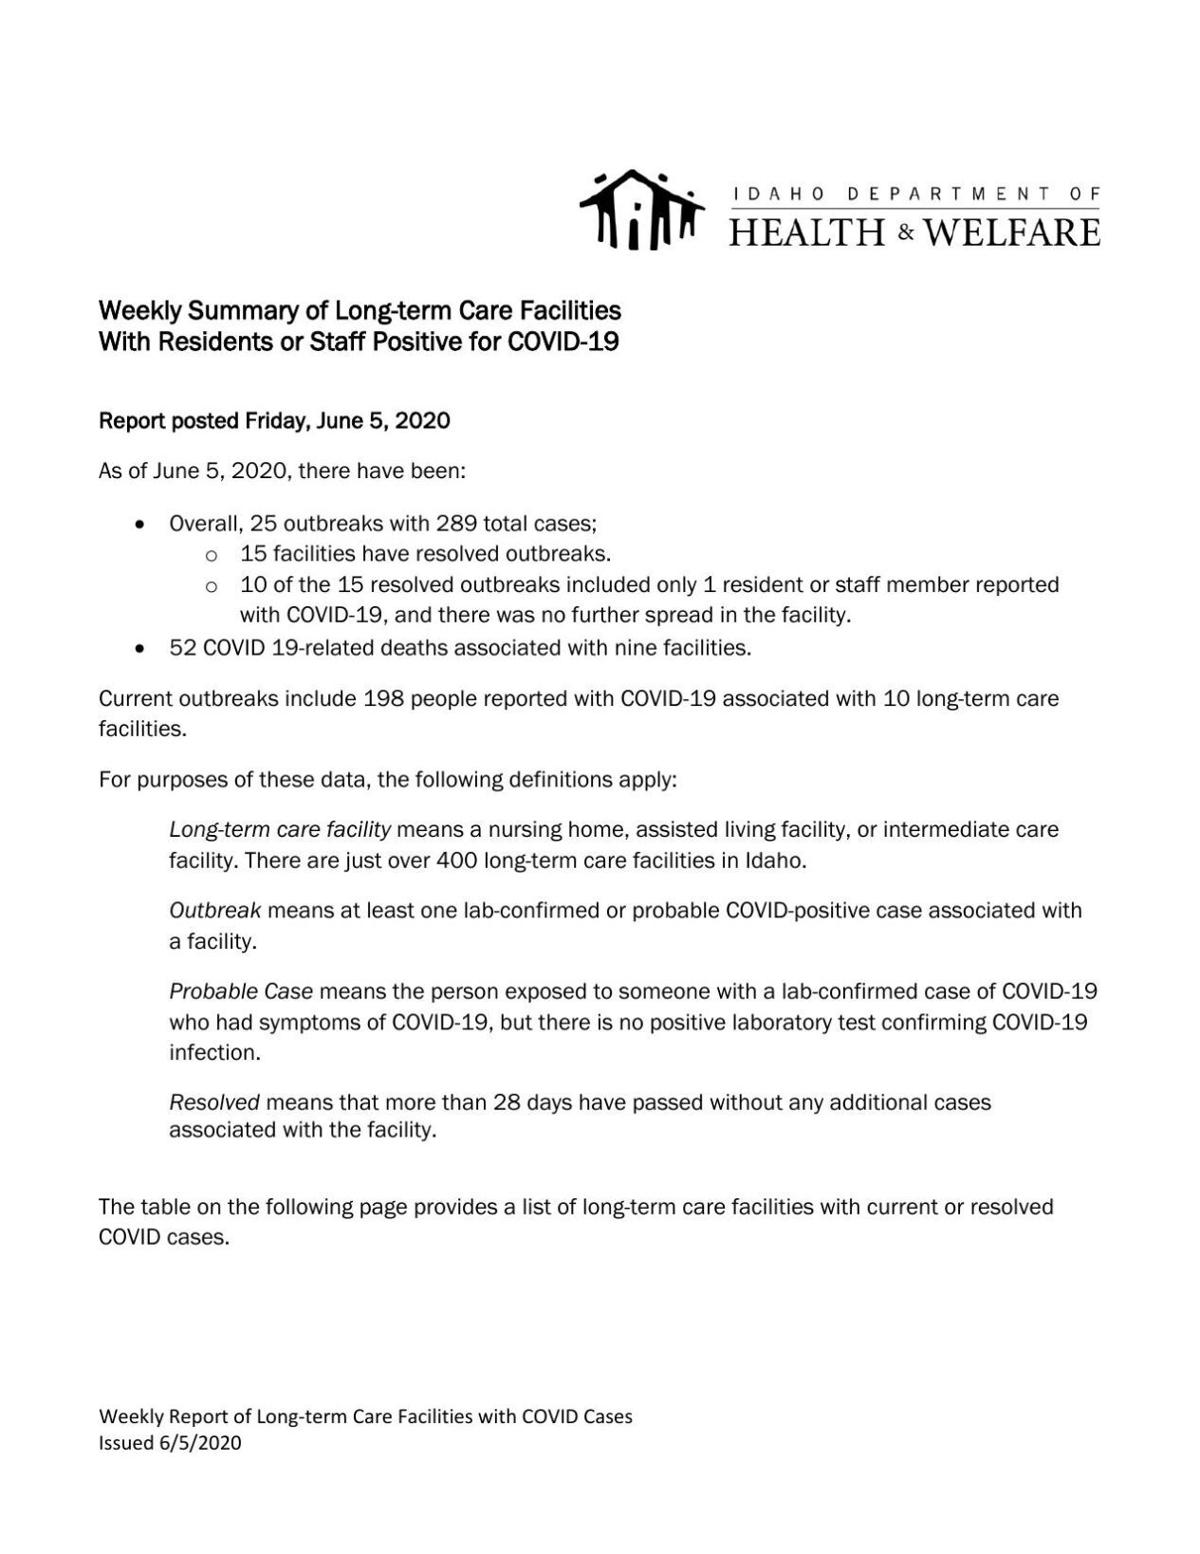 Long-term care facility report June 5